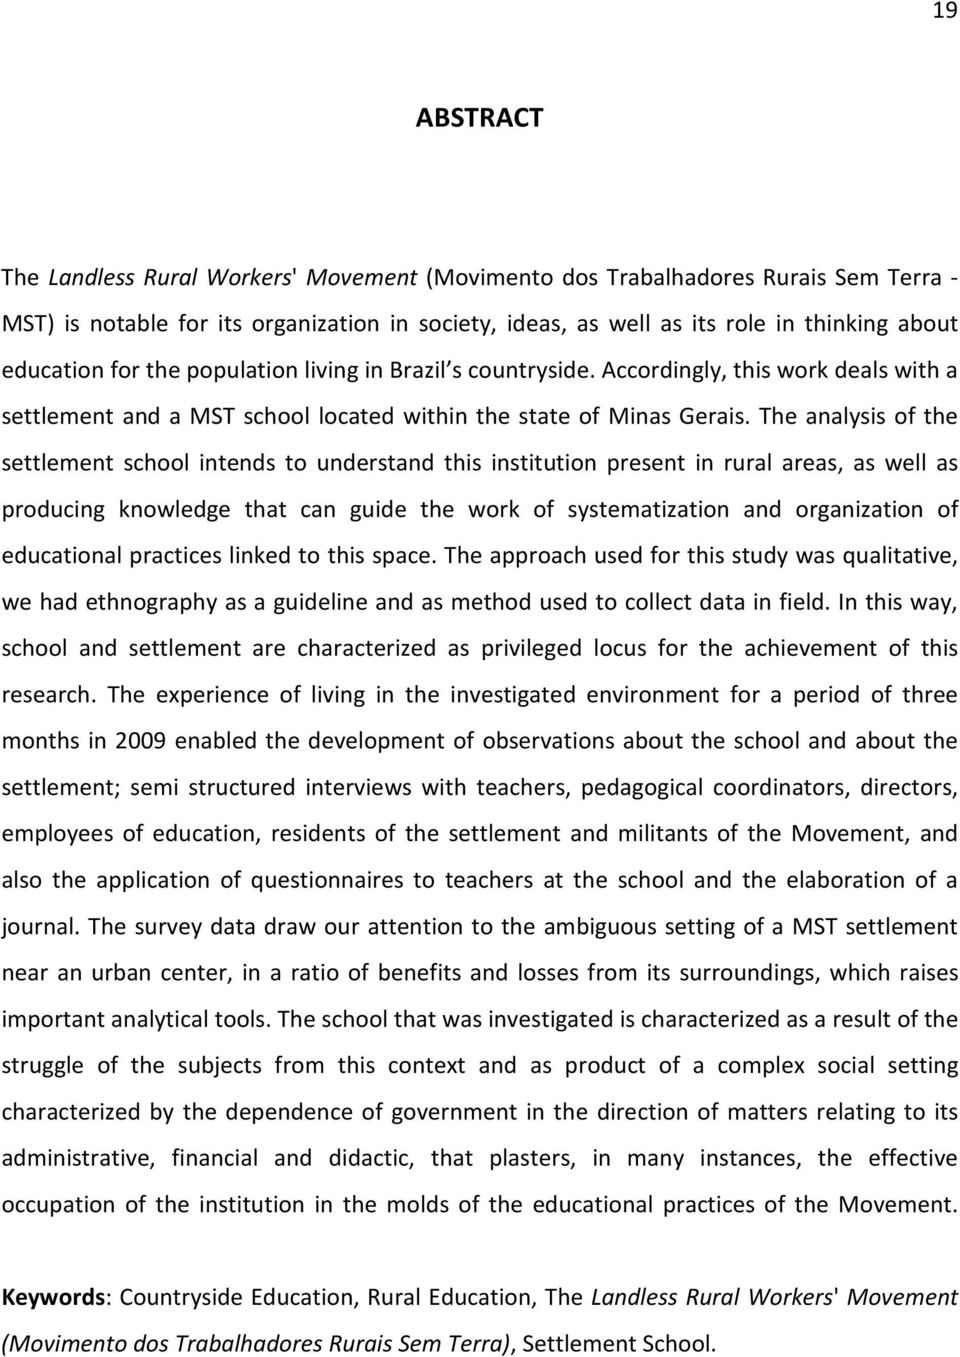 The analysis of the settlement school intends to understand this institution present in rural areas, as well as producing knowledge that can guide the work of systematization and organization of